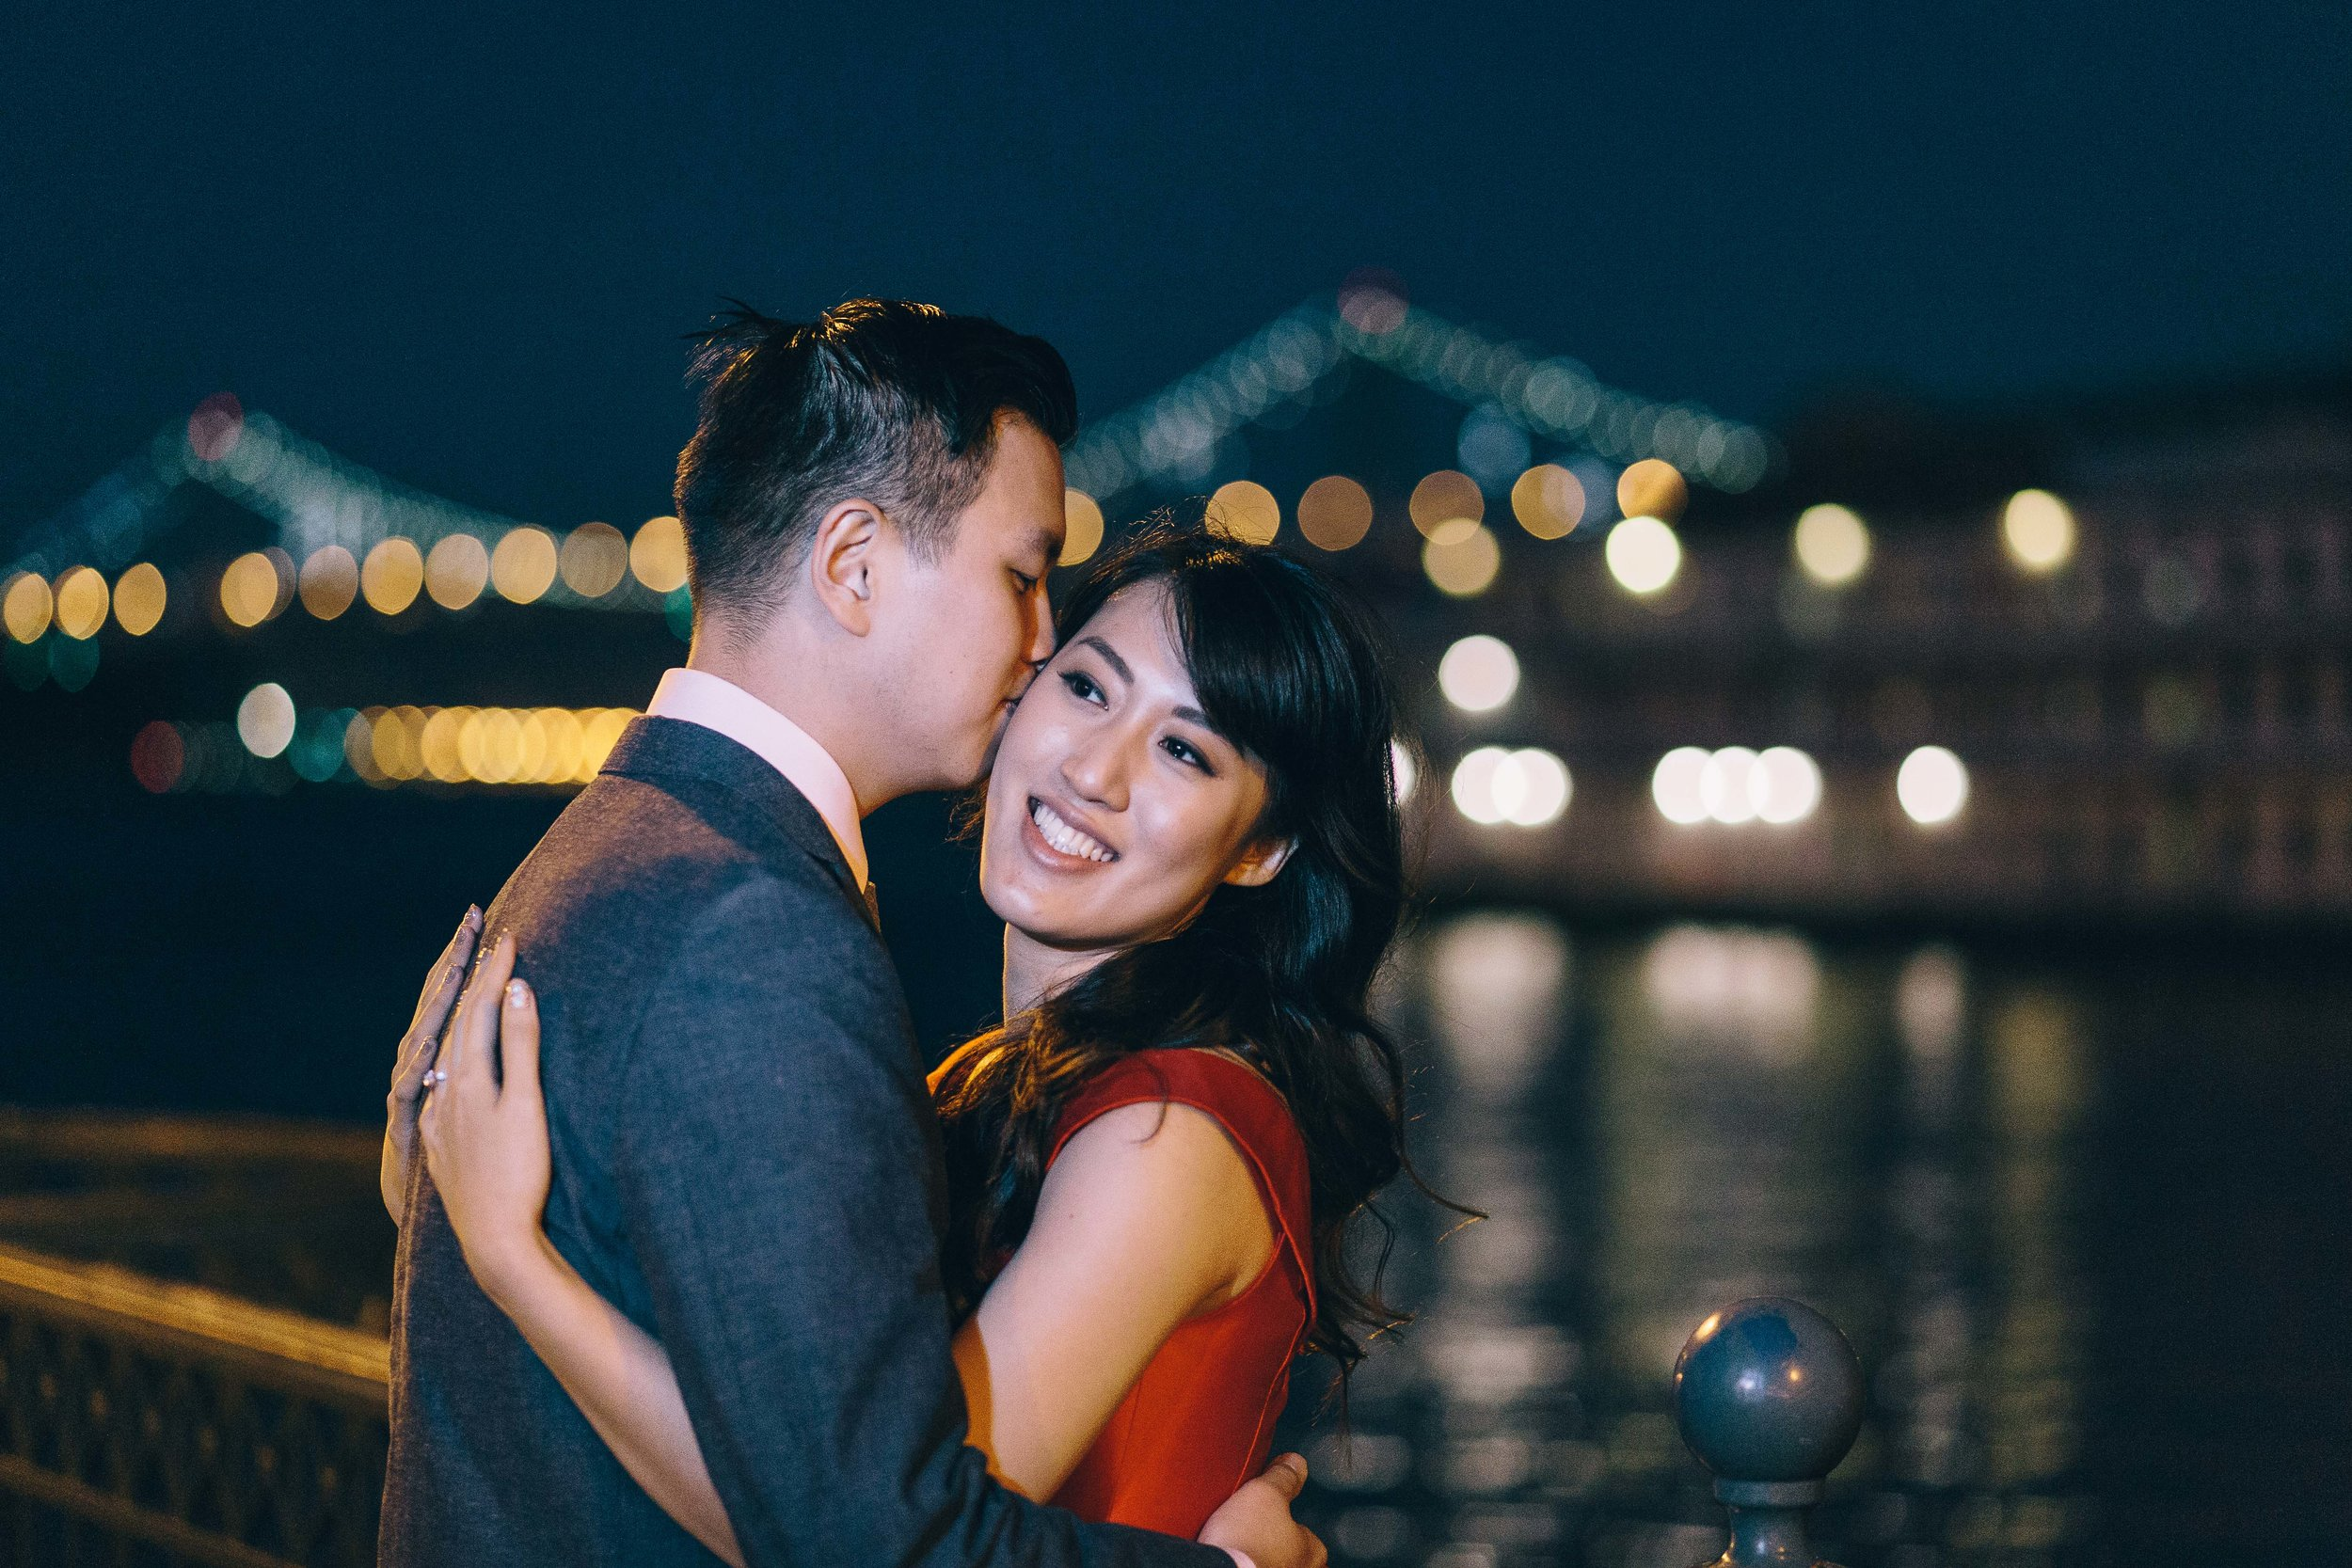 Pre-Wedding Photos in San Francisco by JBJ Pictures Pre-Wedding Photographer, Engagement Session and Wedding Photography in Napa, Sonoma, SF Bay Area (40).jpg